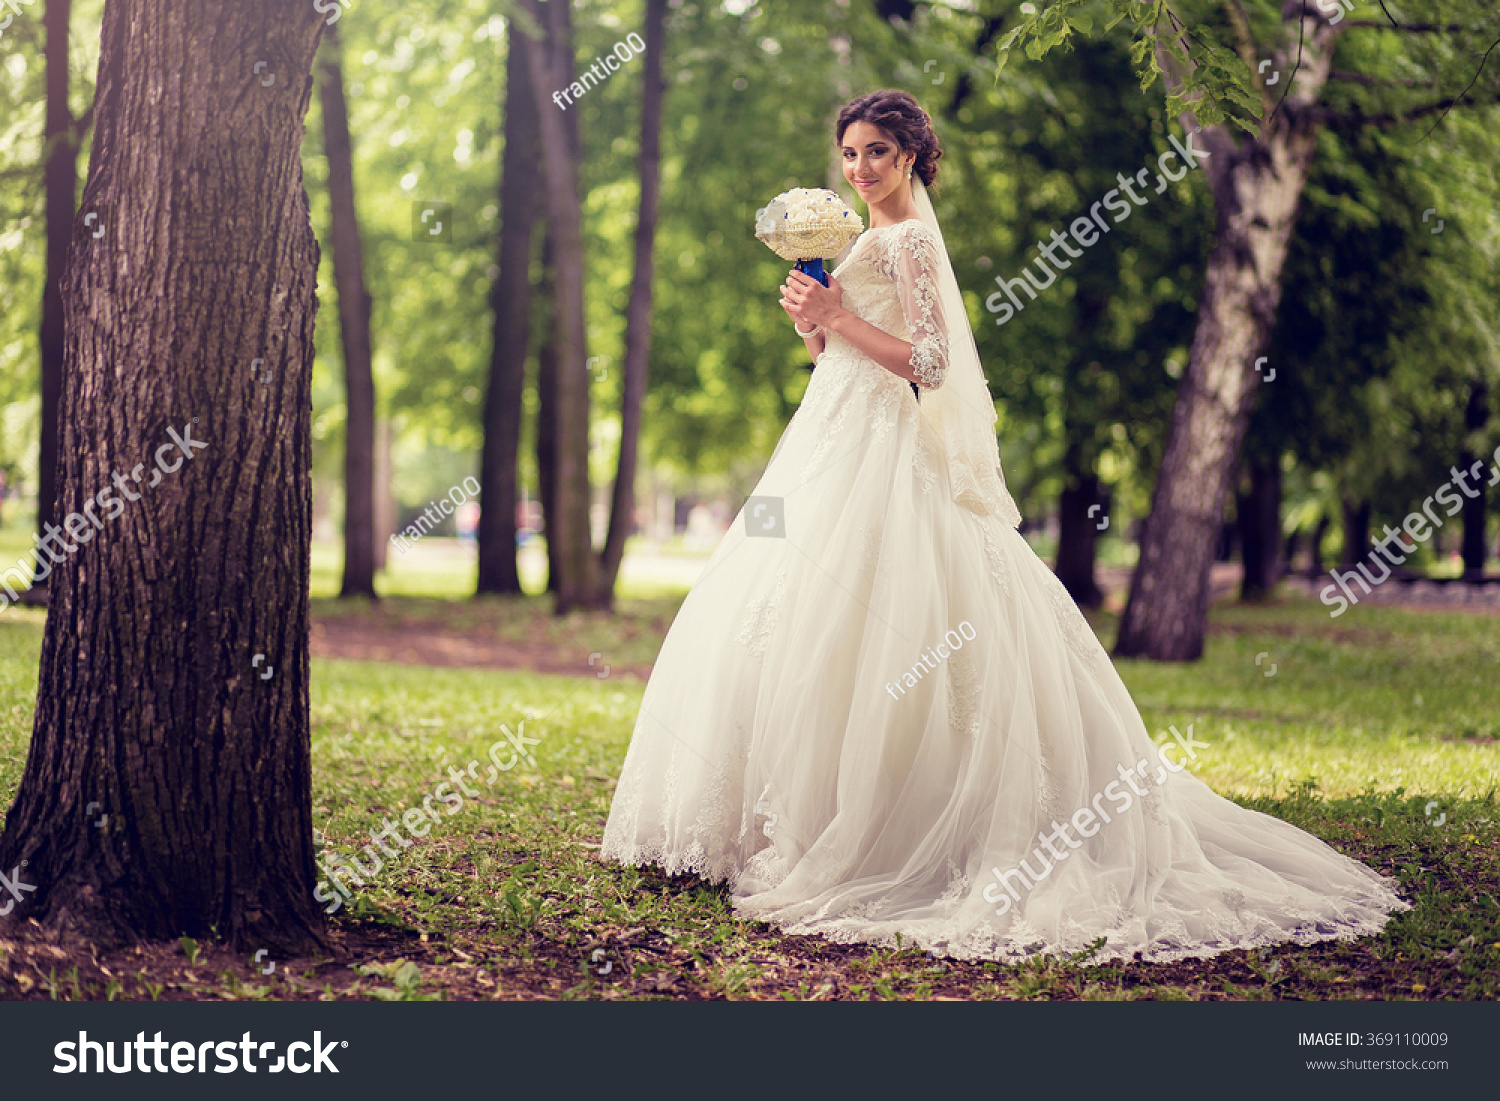 Elegant Bride In Wedding Dress With Dipped Hem Full Length On A Background Of: Forest Dipped Wedding Dresses At Websimilar.org